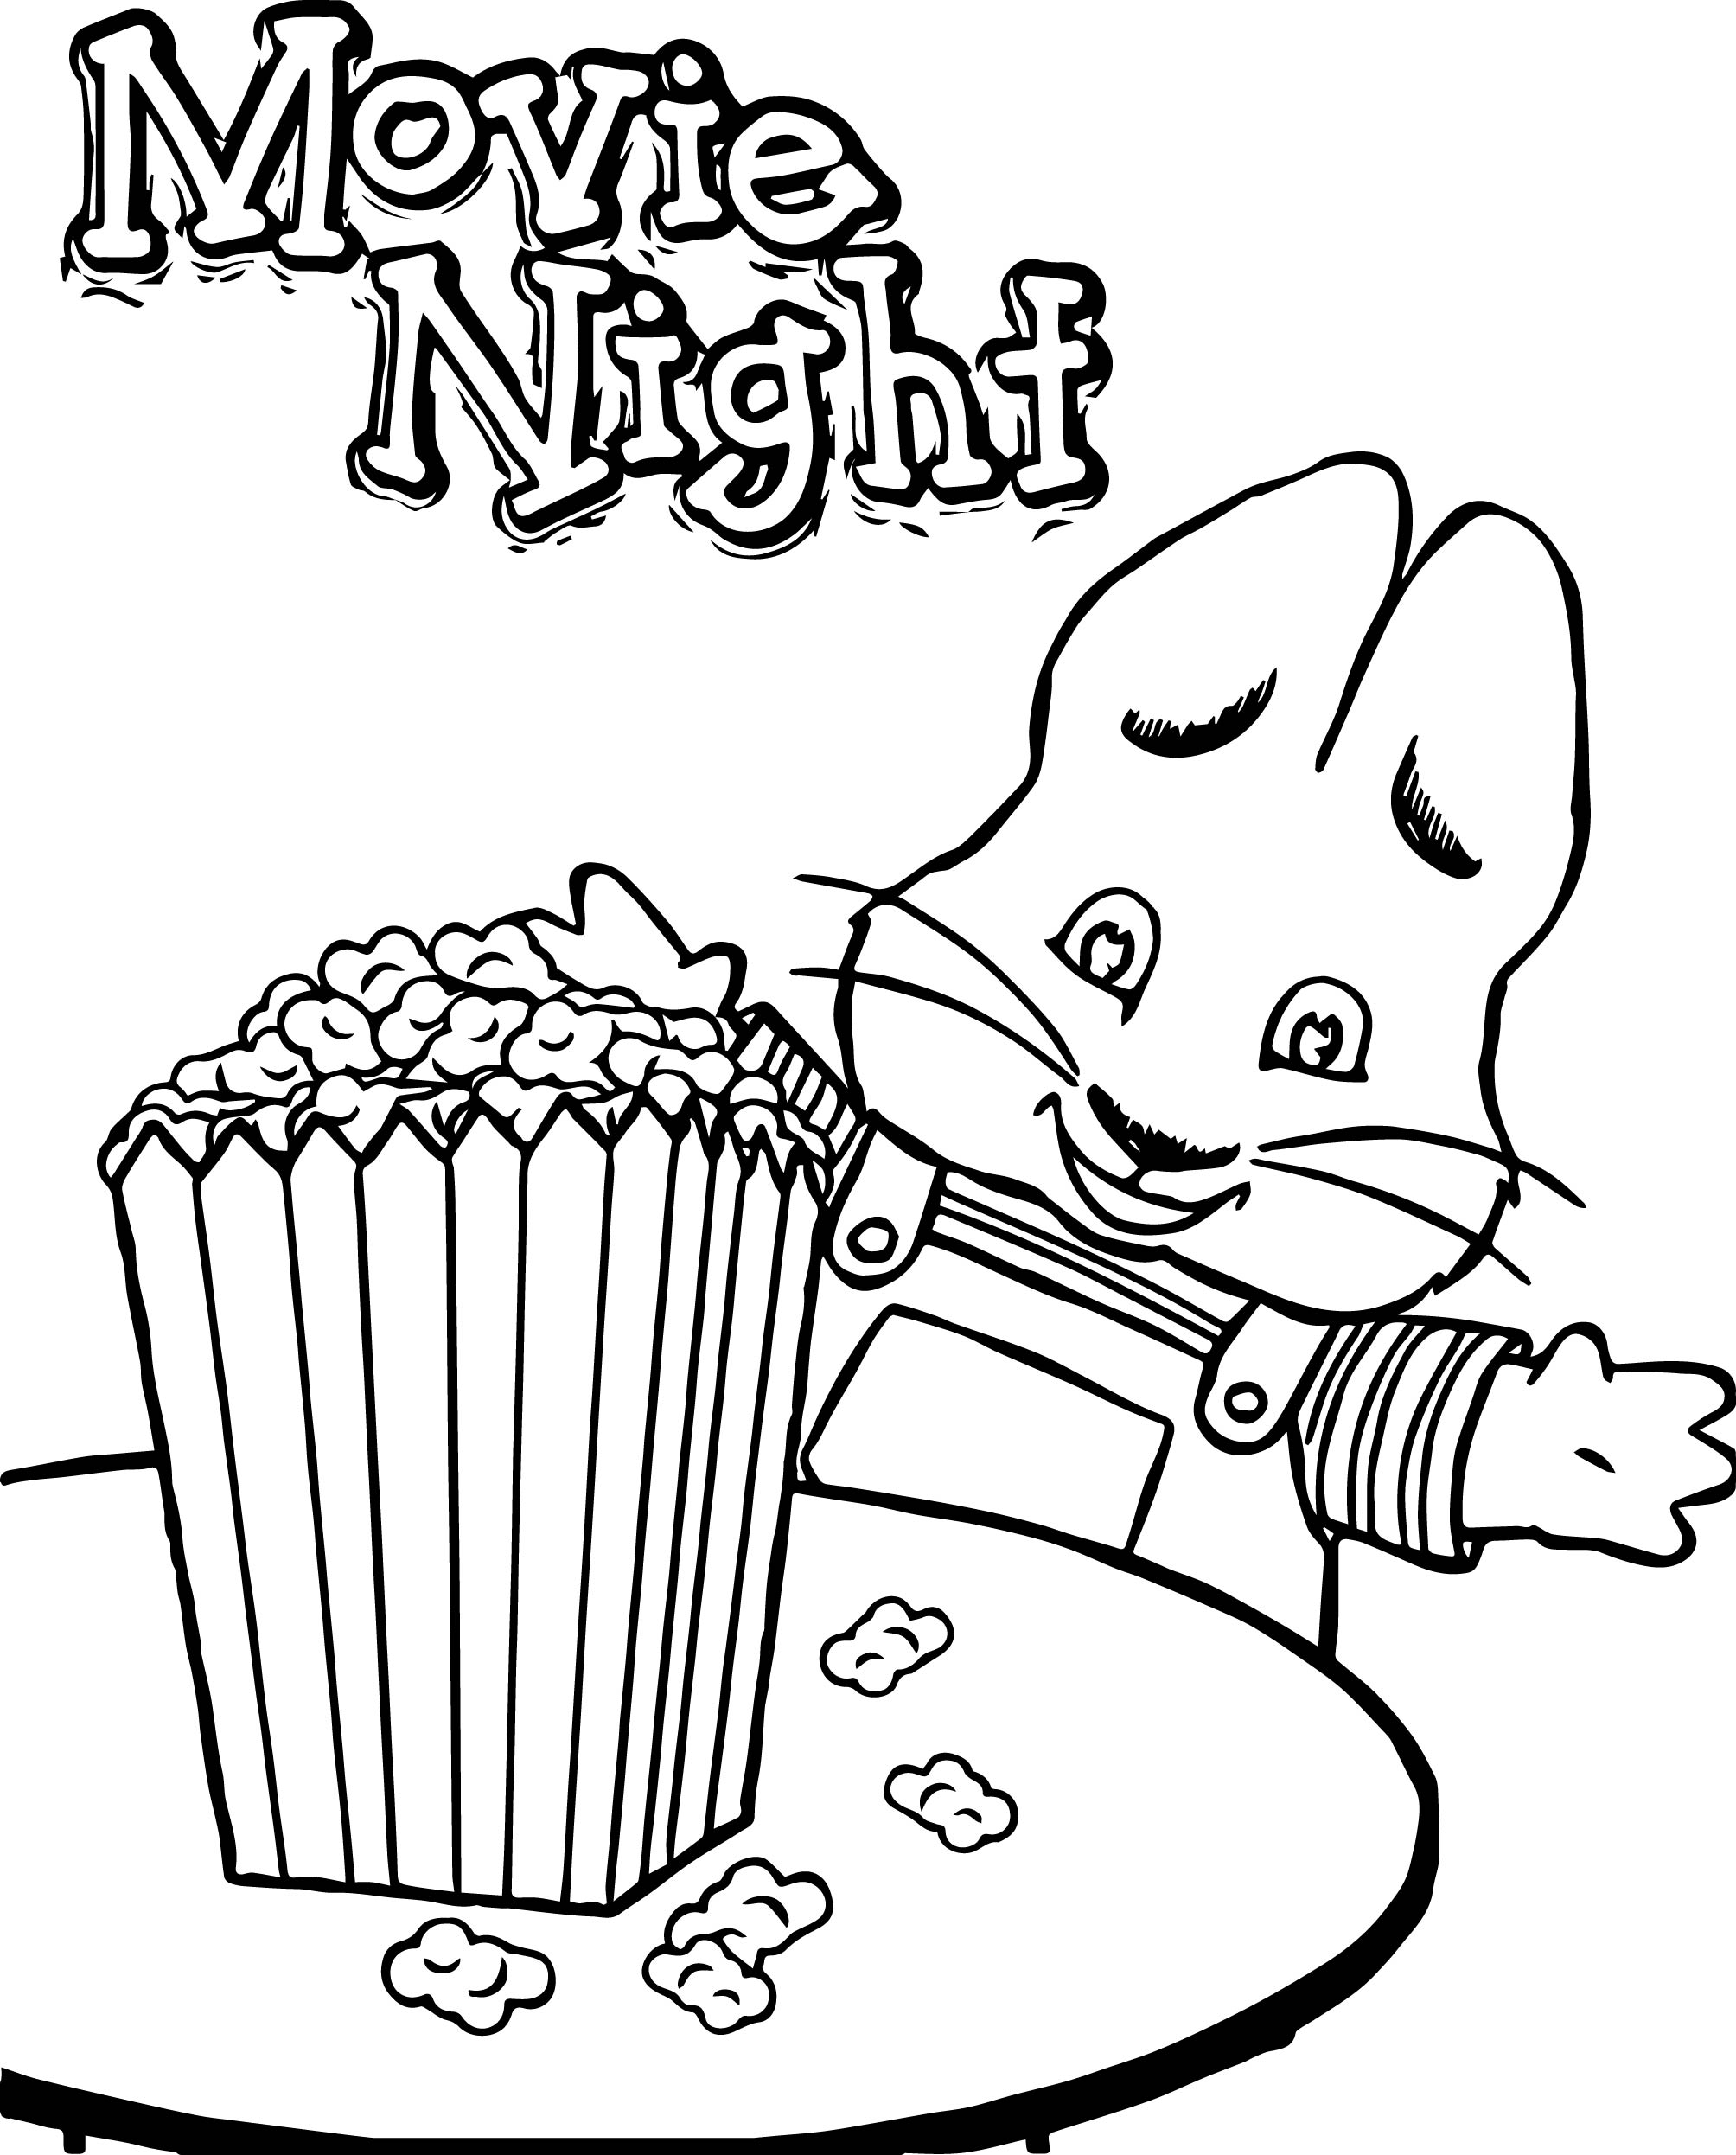 2008x2492 Innovation Design Popcorn Coloring Pages Max Ruby Movie Night Eat